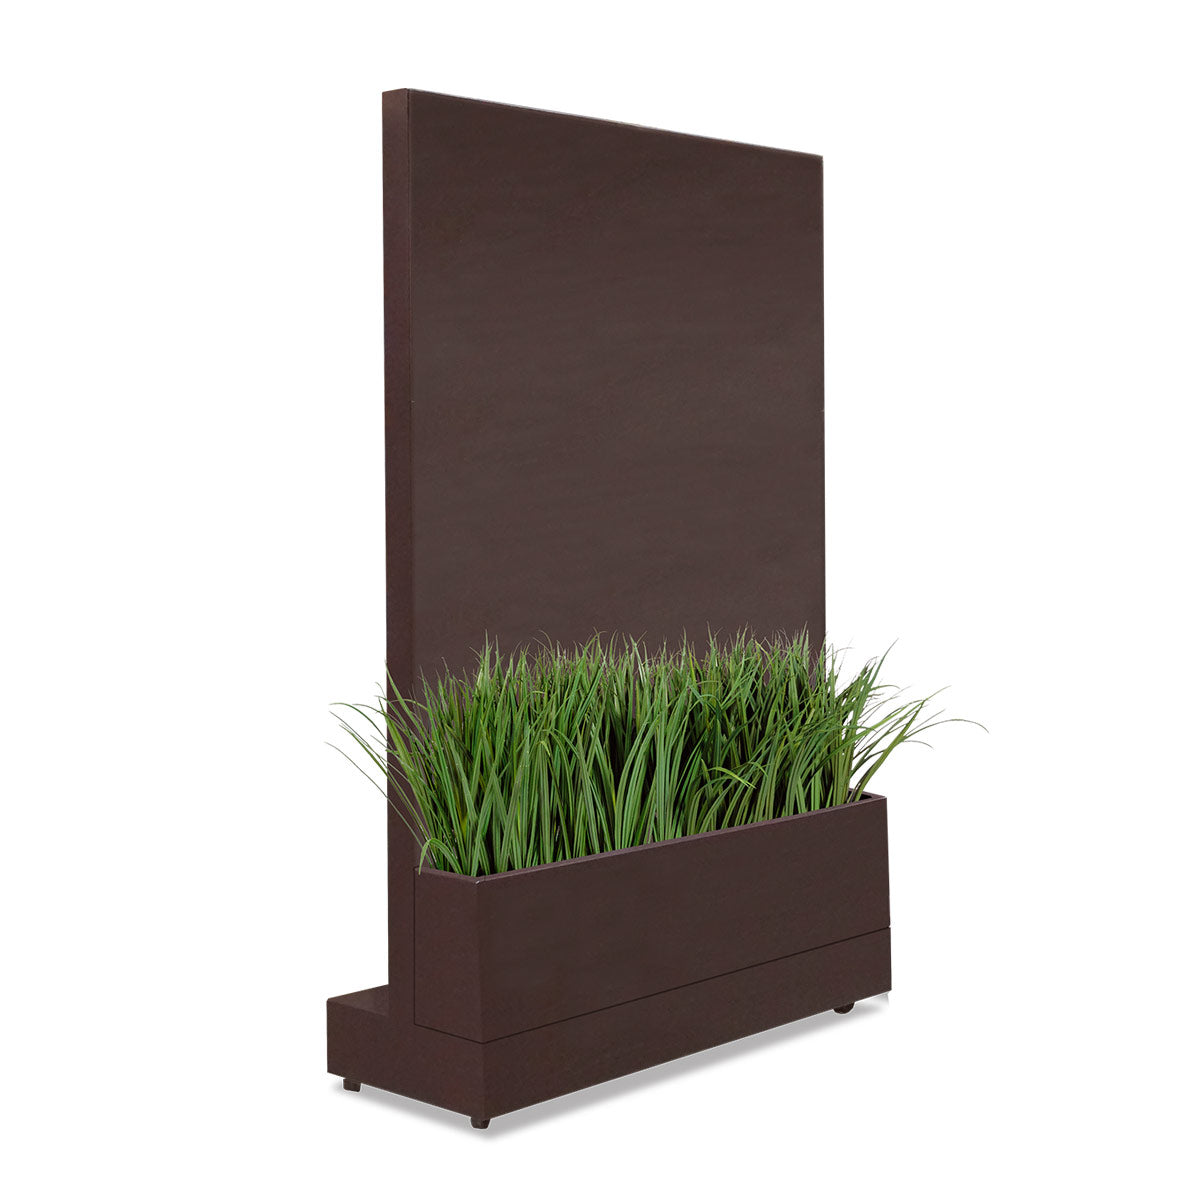 Movable Partition Wall with Liriope Planter, Bronze Black